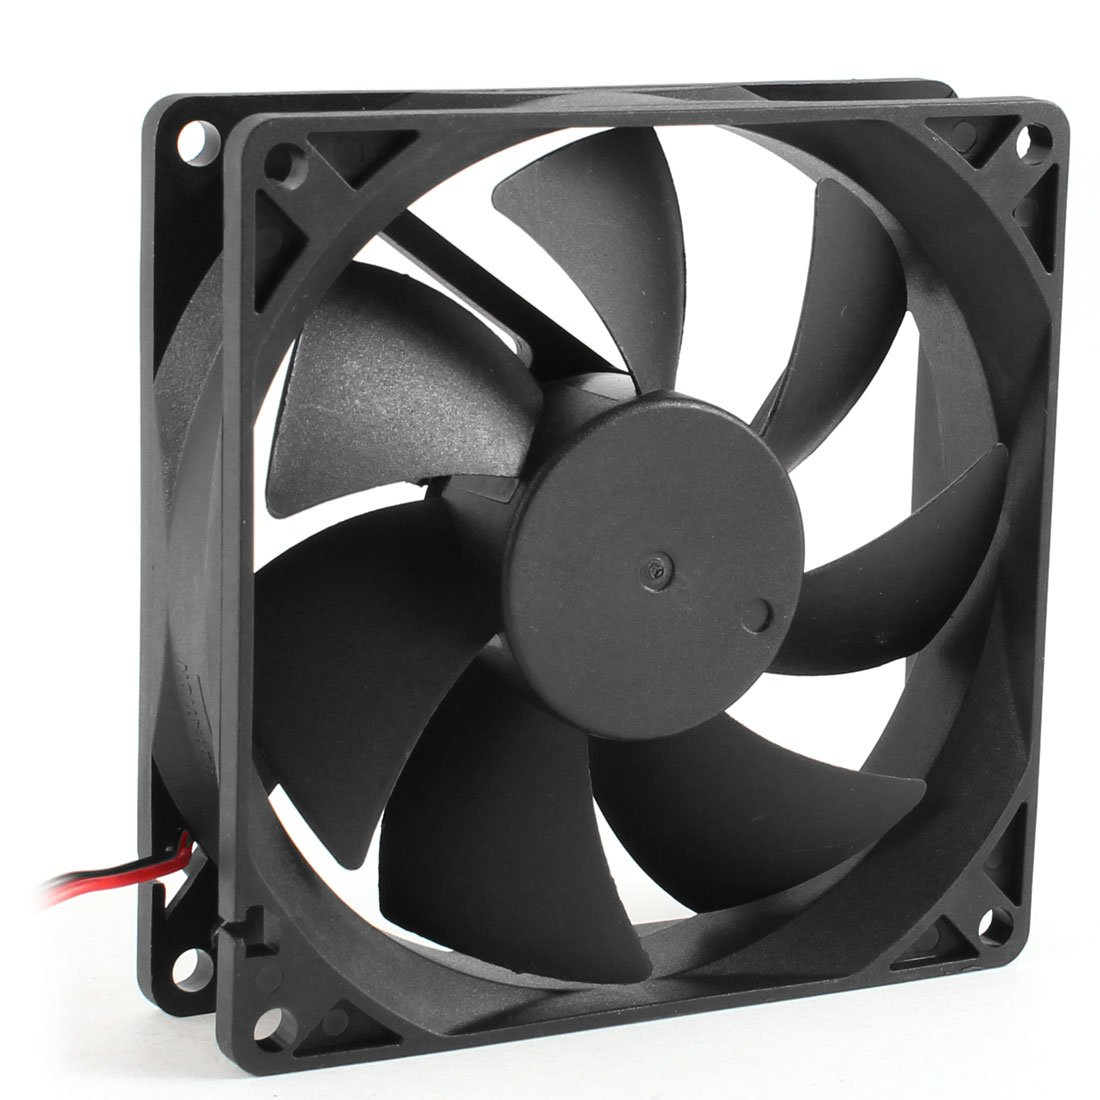 2016 New 92mm x 25mm DC 12V 2Pin 65.01CFM Computer Case CPU Cooler Cooling Fan new 3u ultra short computer case 380mm large panel big power supply ultra short 3u computer case server computer case